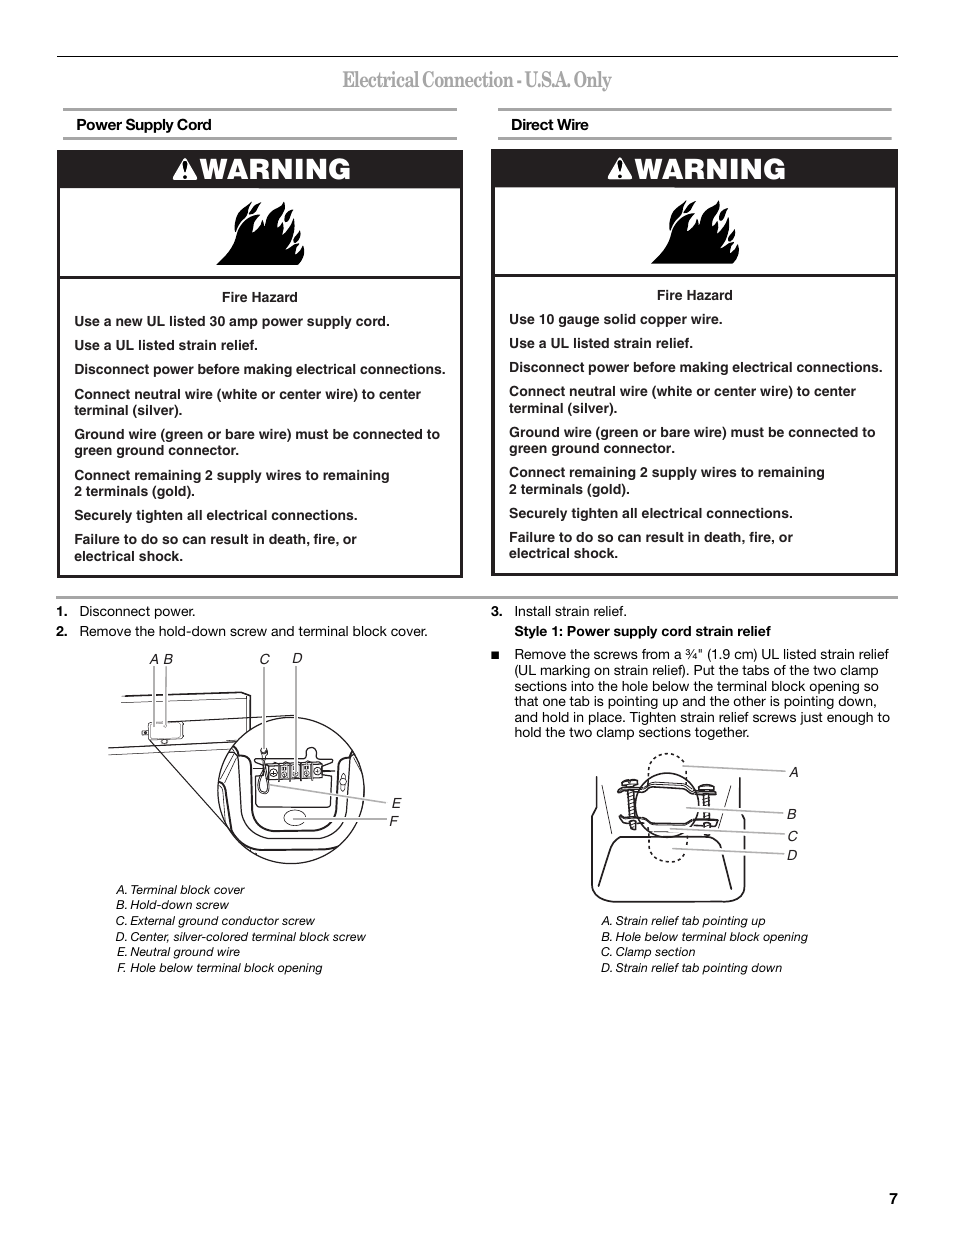 Warning Electrical Connection Usa Only Whirlpool Cabrio Wiring White Black Silver Gold W10151493a Manuel Dutilisation Page 7 48